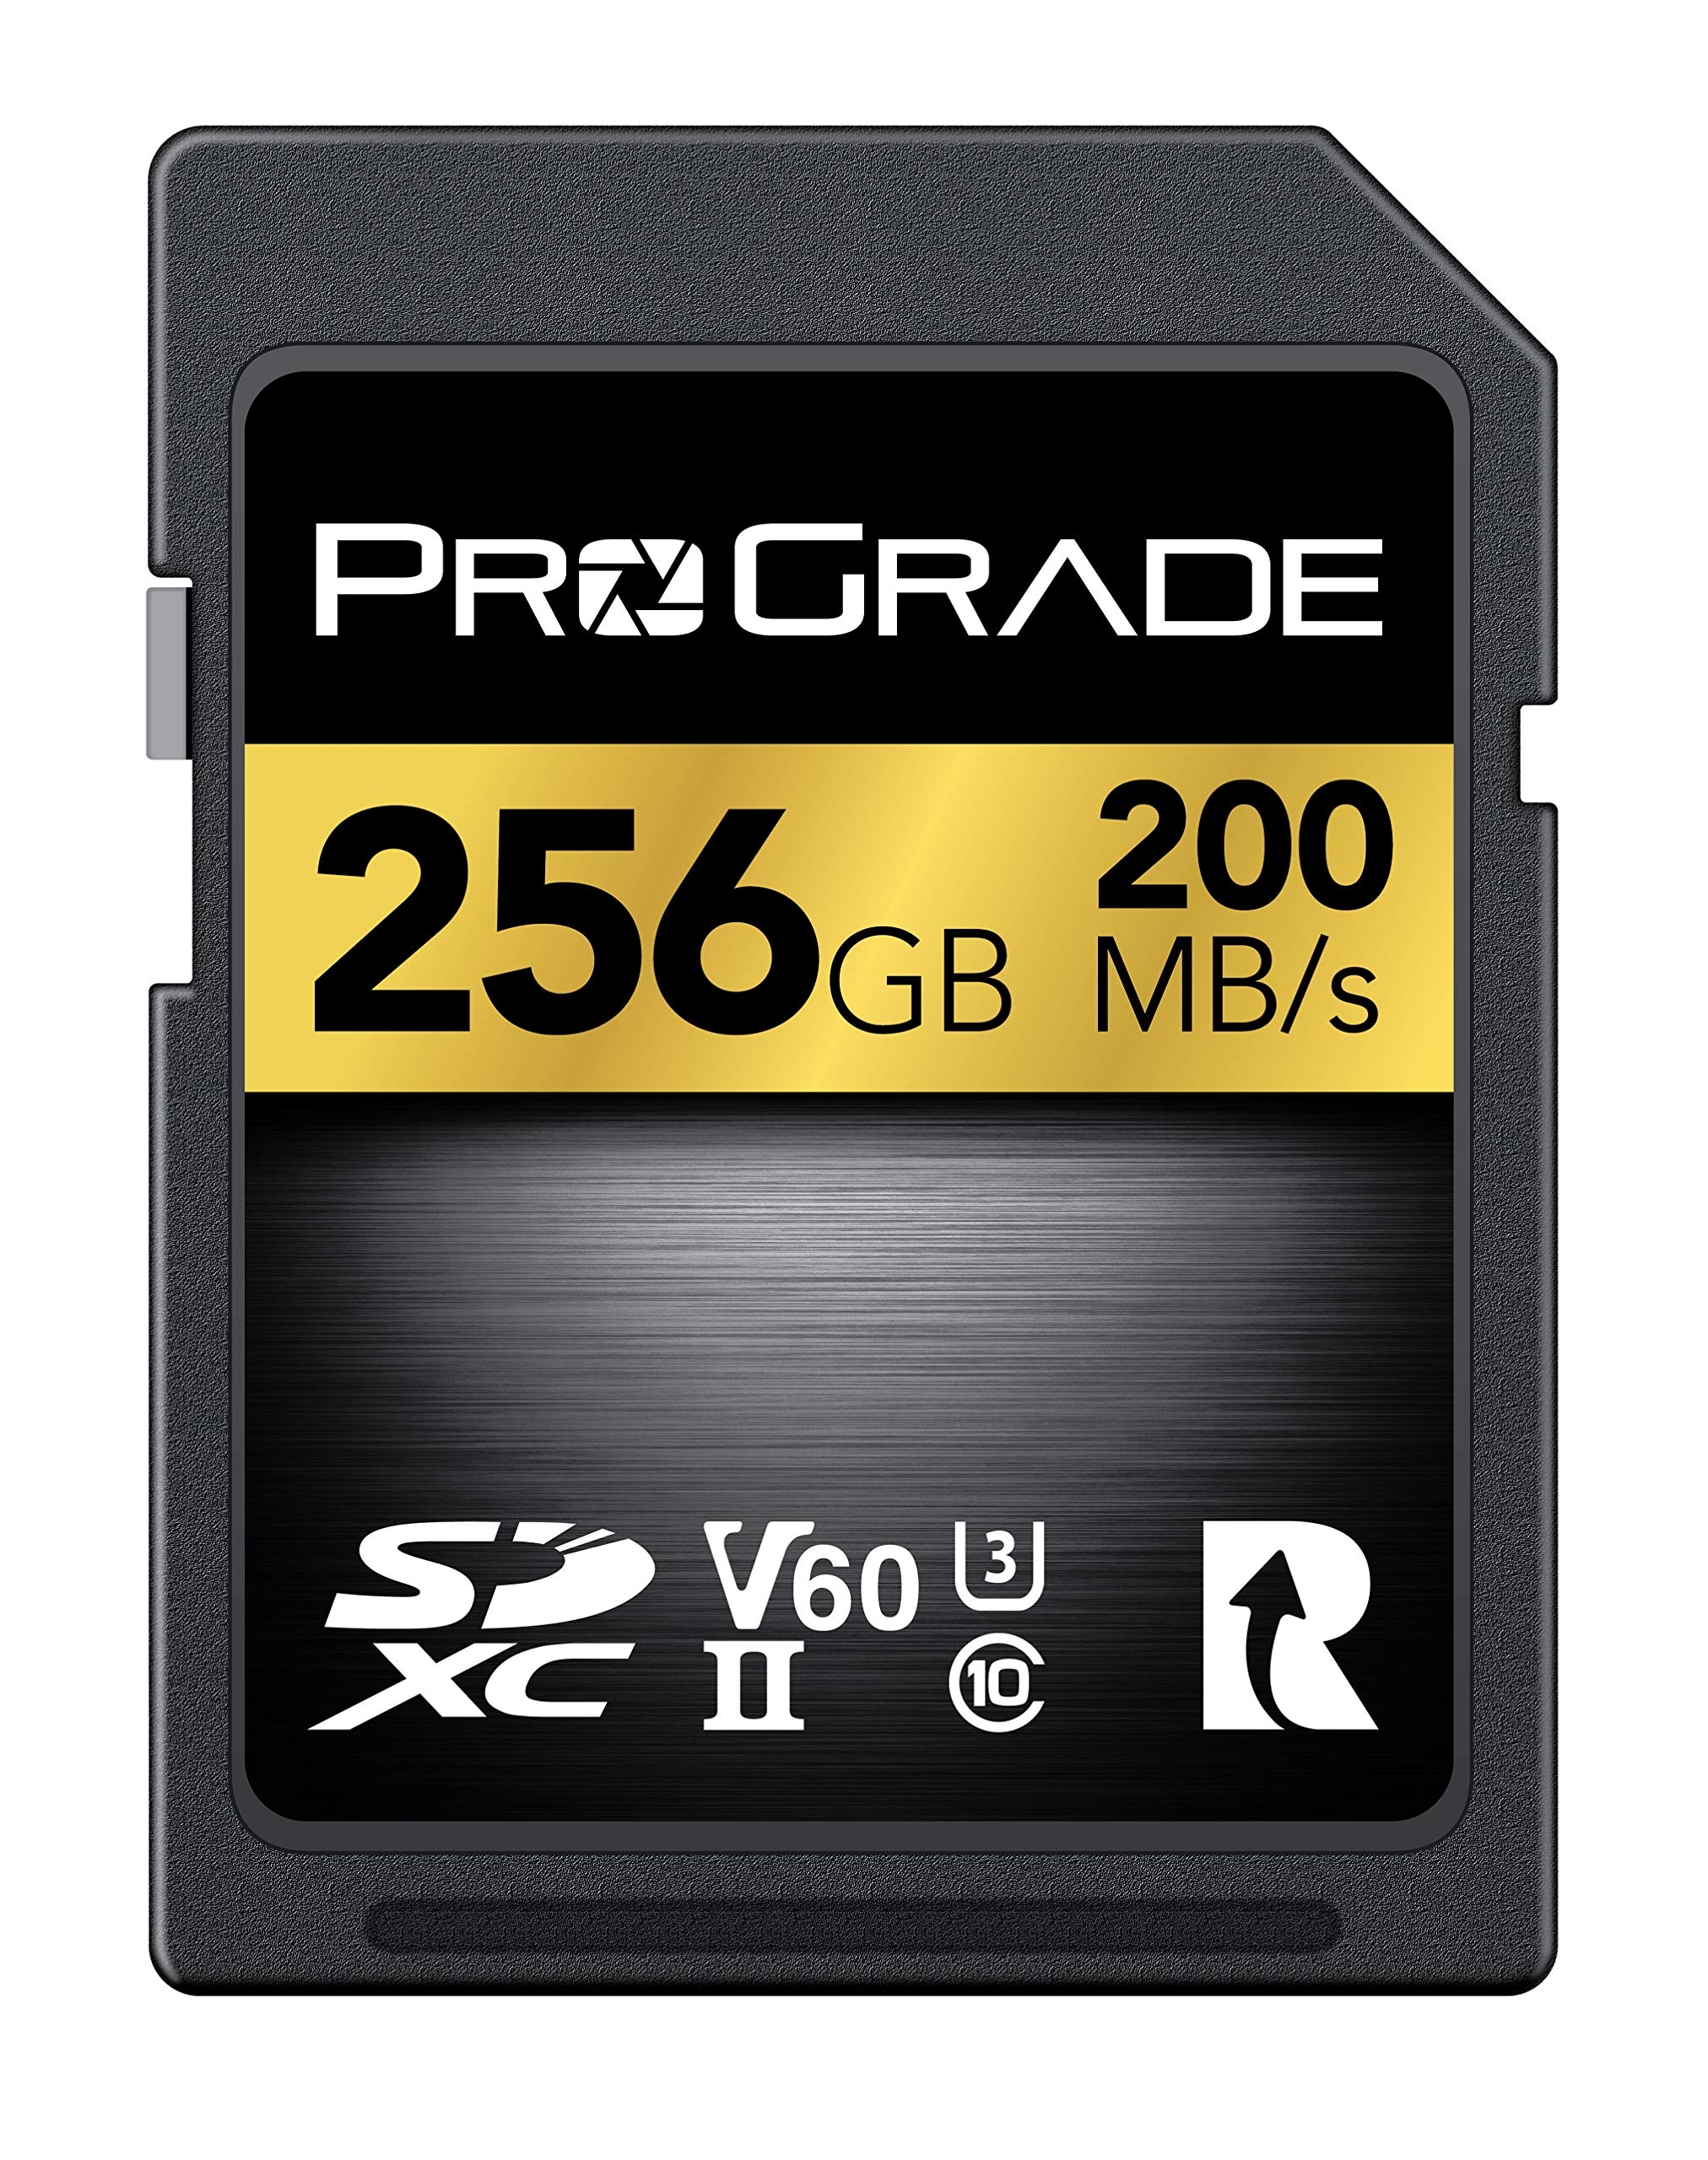 ProGrade Digital SDXC UHS-II Memory Card (256GB) by ProGrade Digital Incorporated